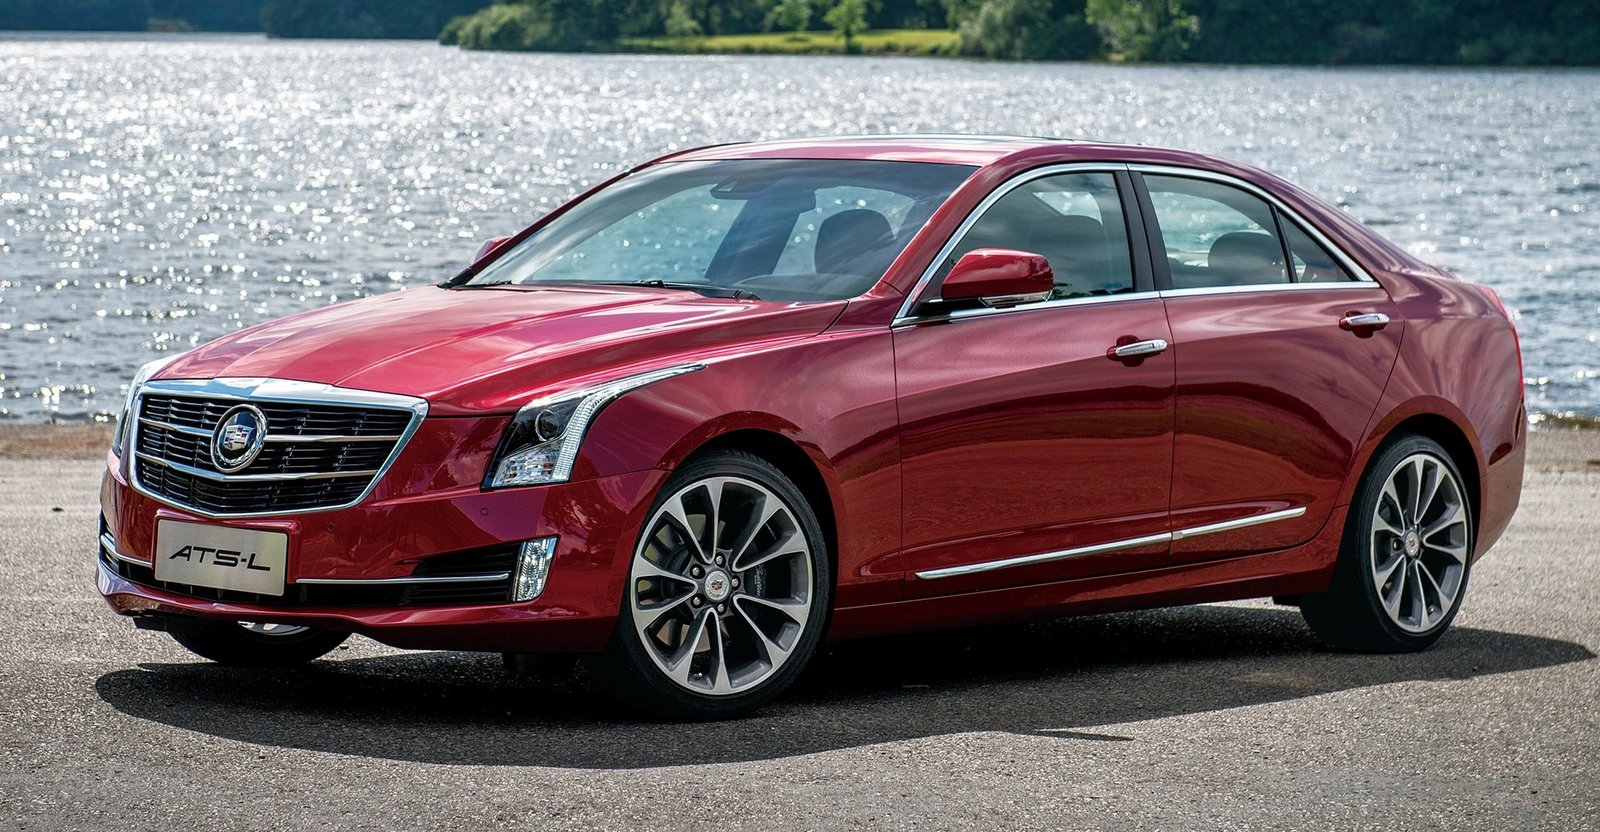 2015 cadillac ats l review top speed. Black Bedroom Furniture Sets. Home Design Ideas